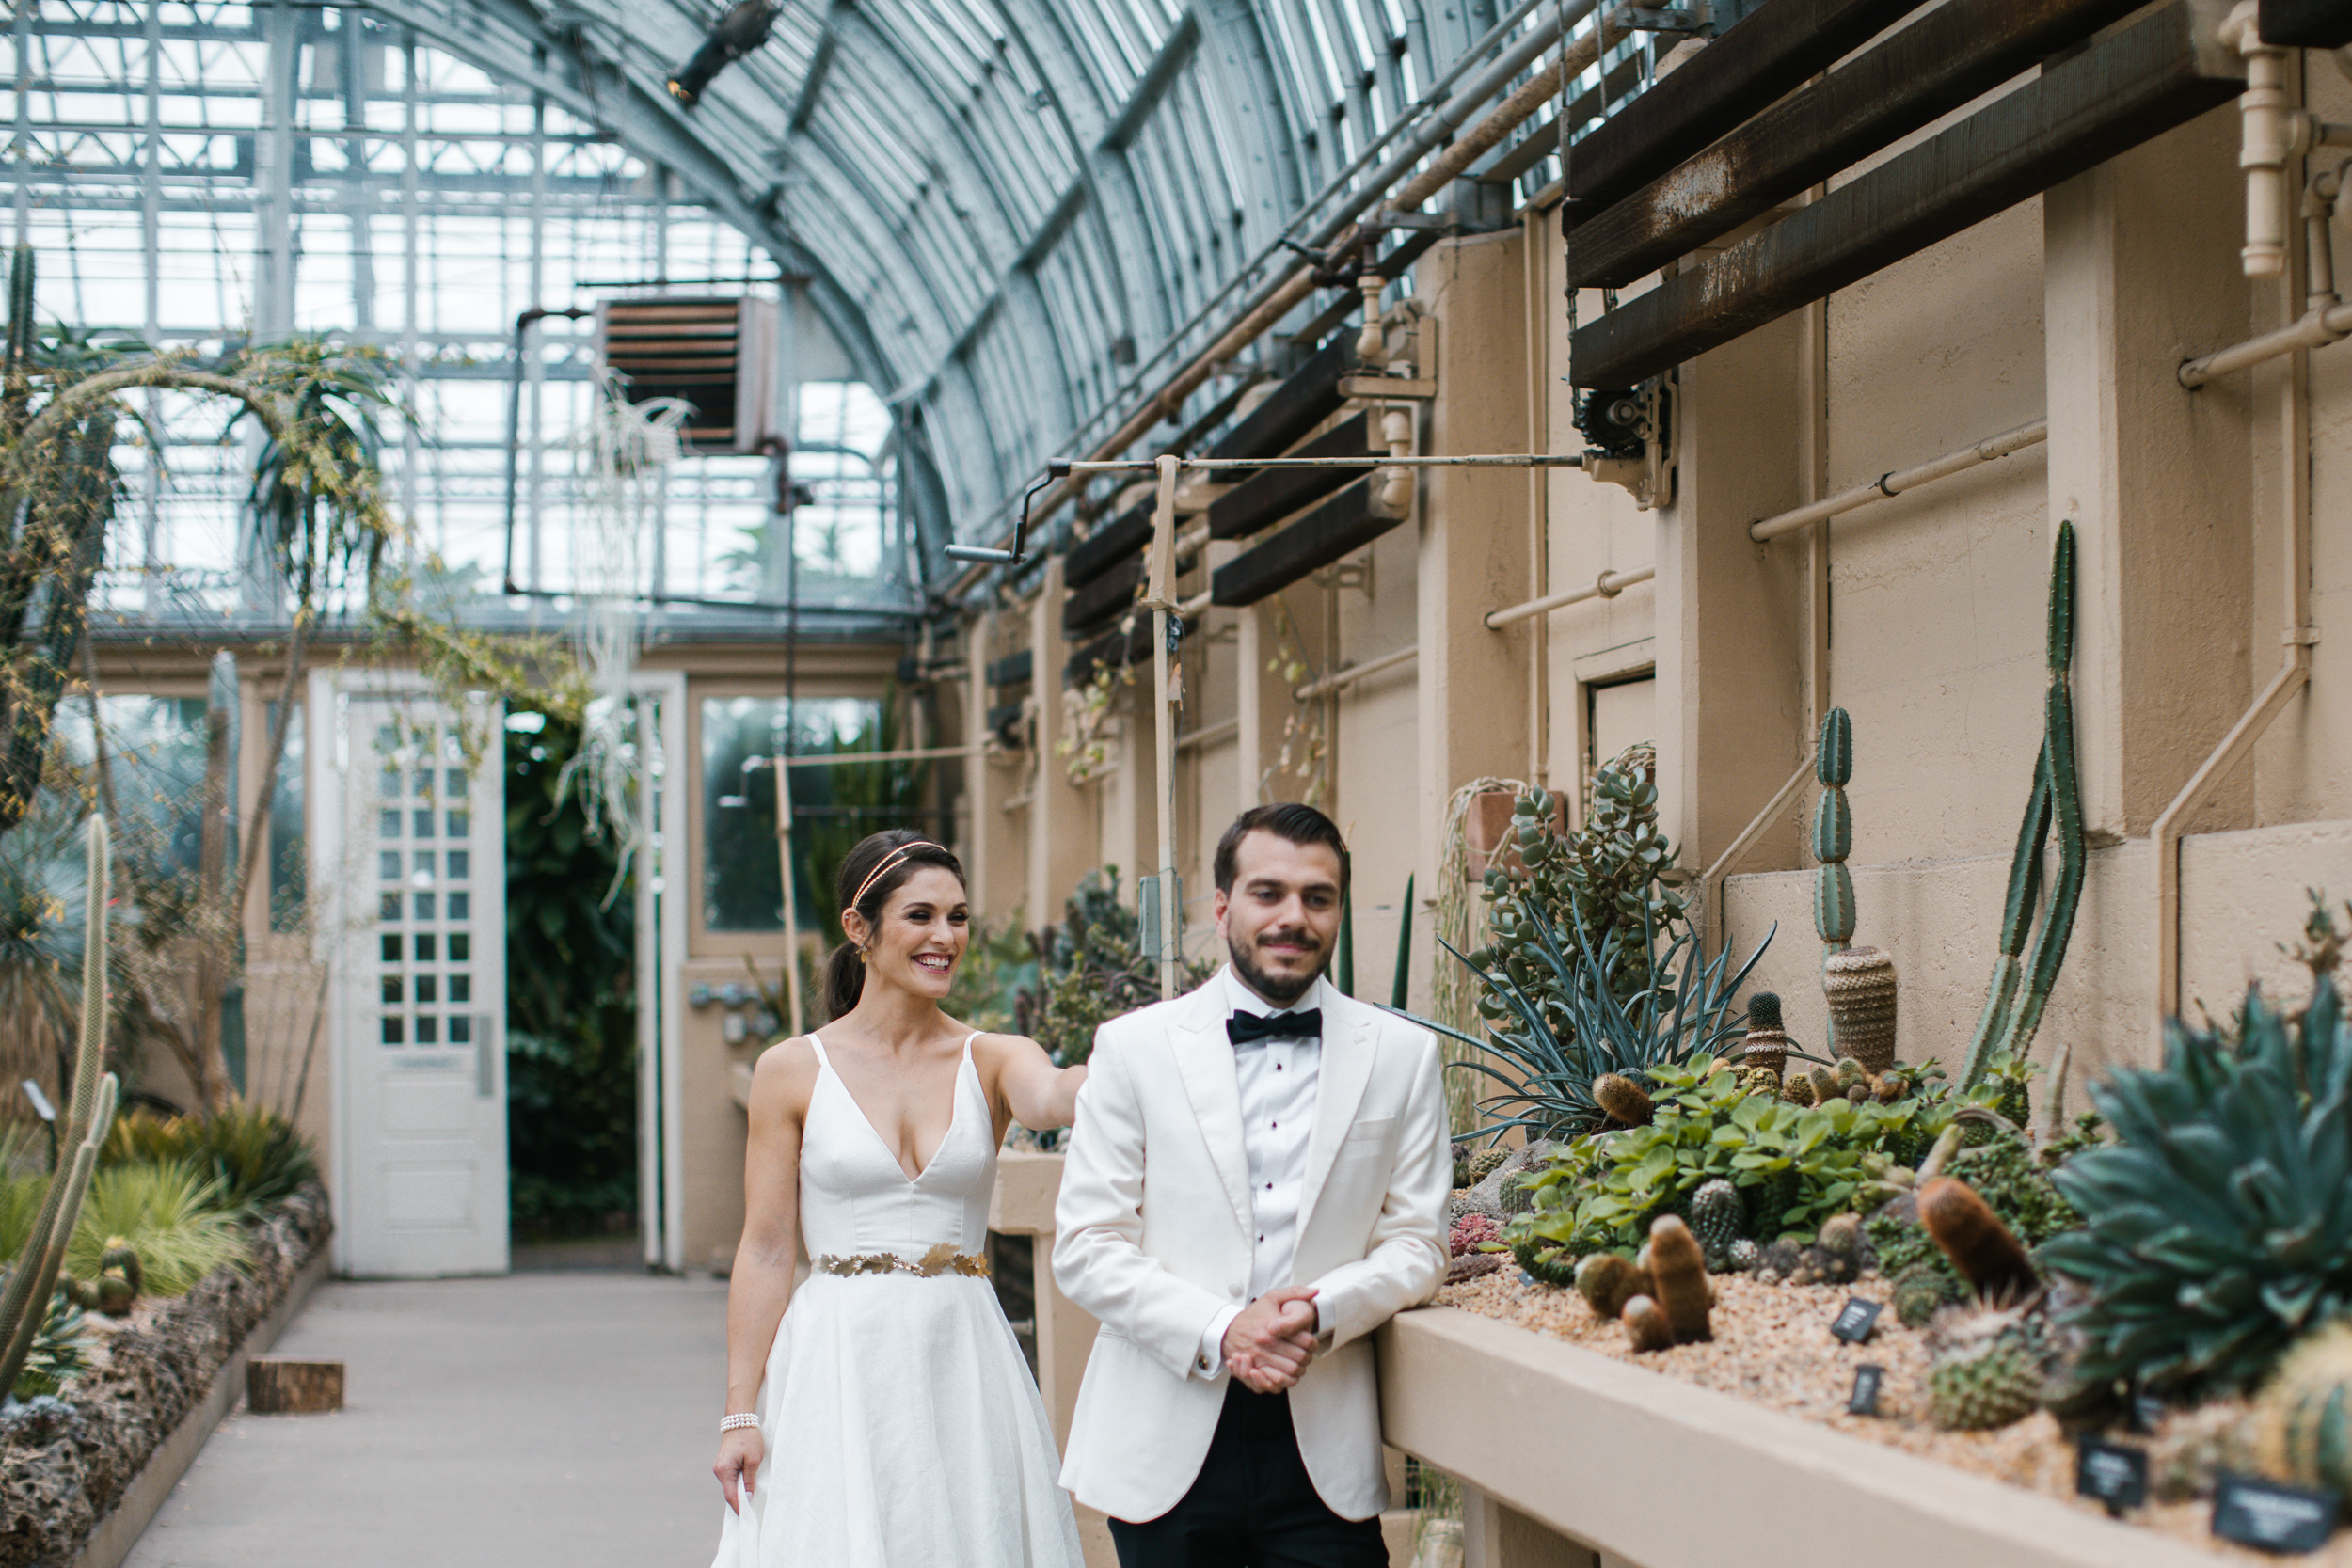 Garfield Park Conservatory Wedding.Garfield Park Conservatory Wedding Anna Zajac Wedding